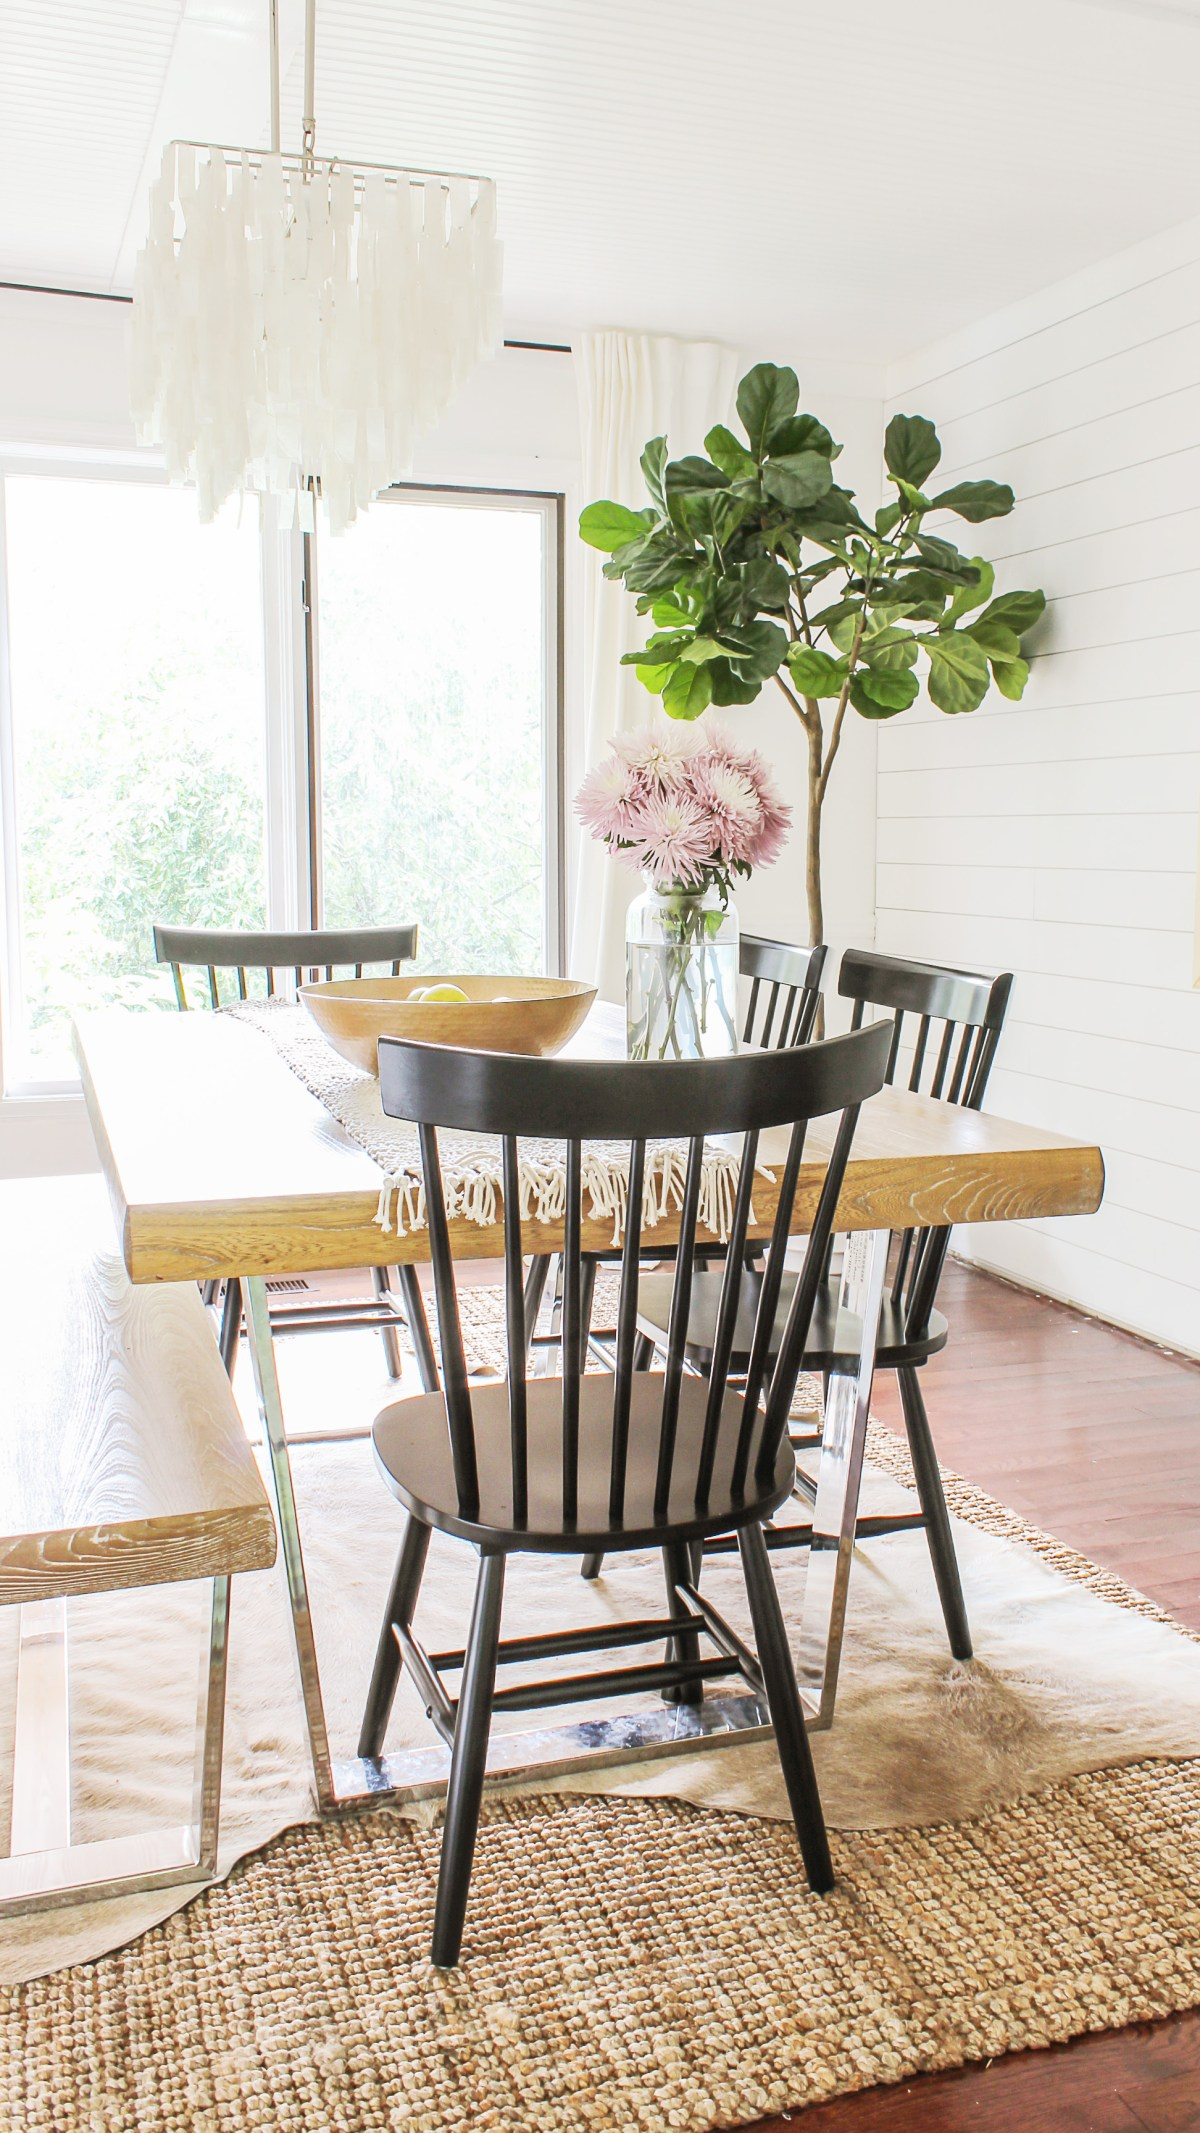 Modern Farmhouse Dining Chairs Under $100 - Decor on the Cheap